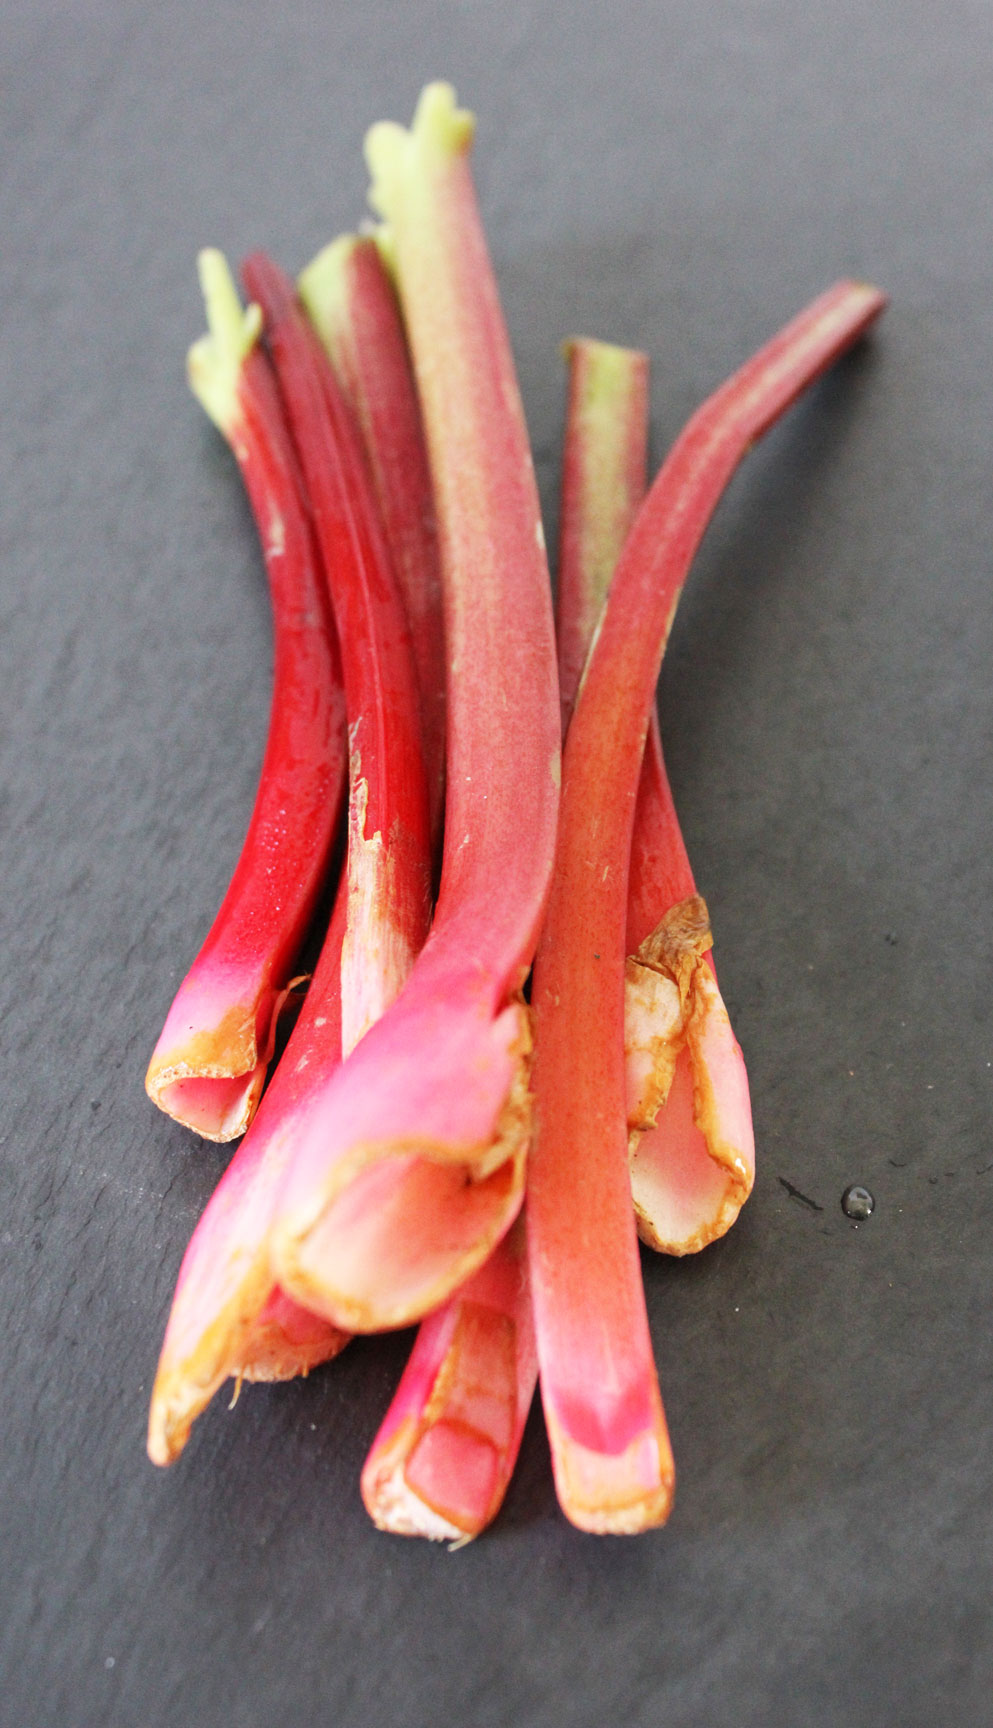 Rhubarb Ready: A Round-up of Rhubarb Recipes